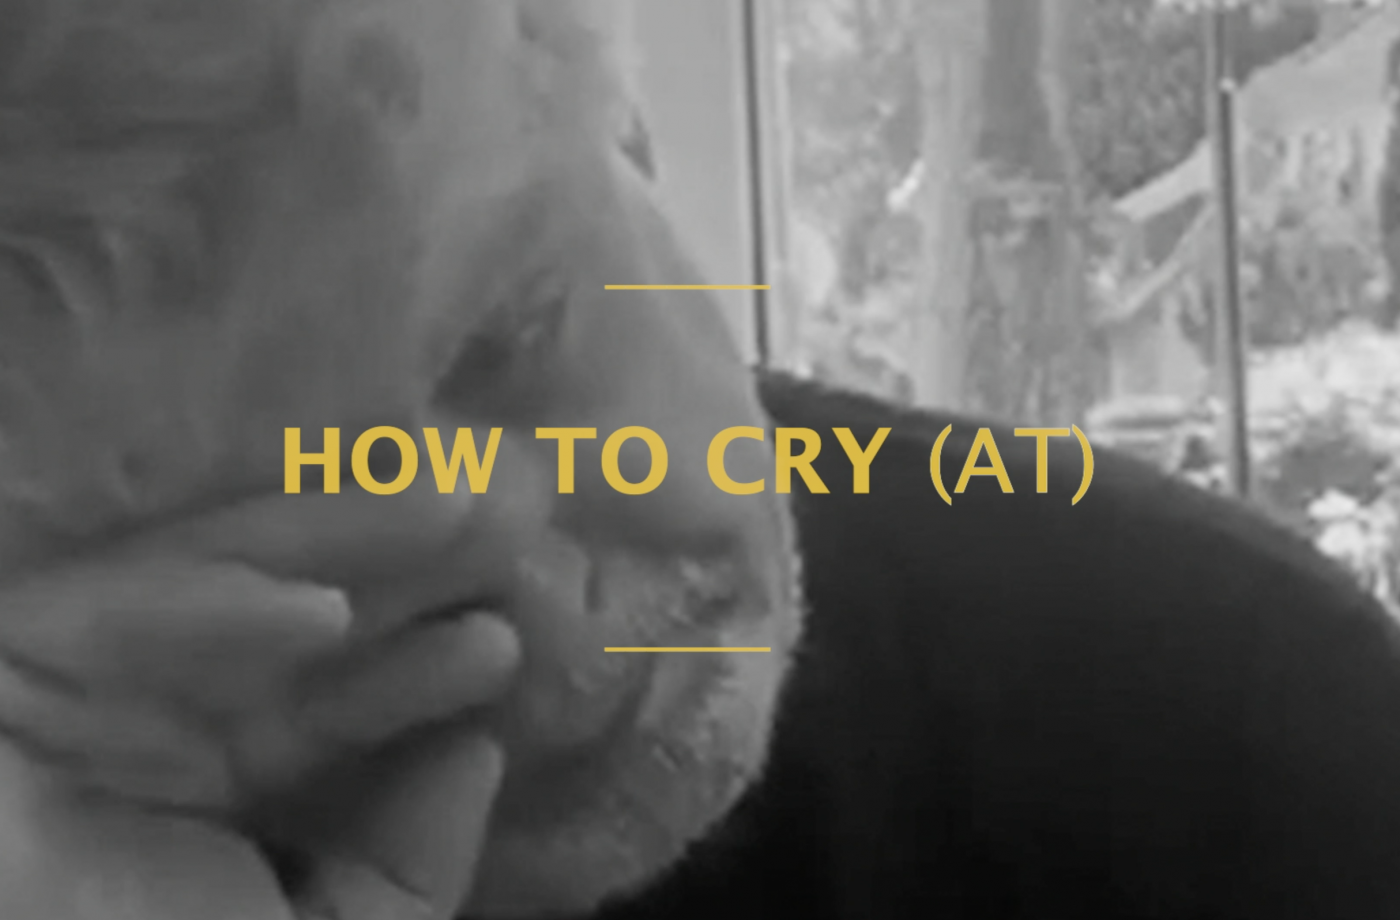 HOW TO CRY